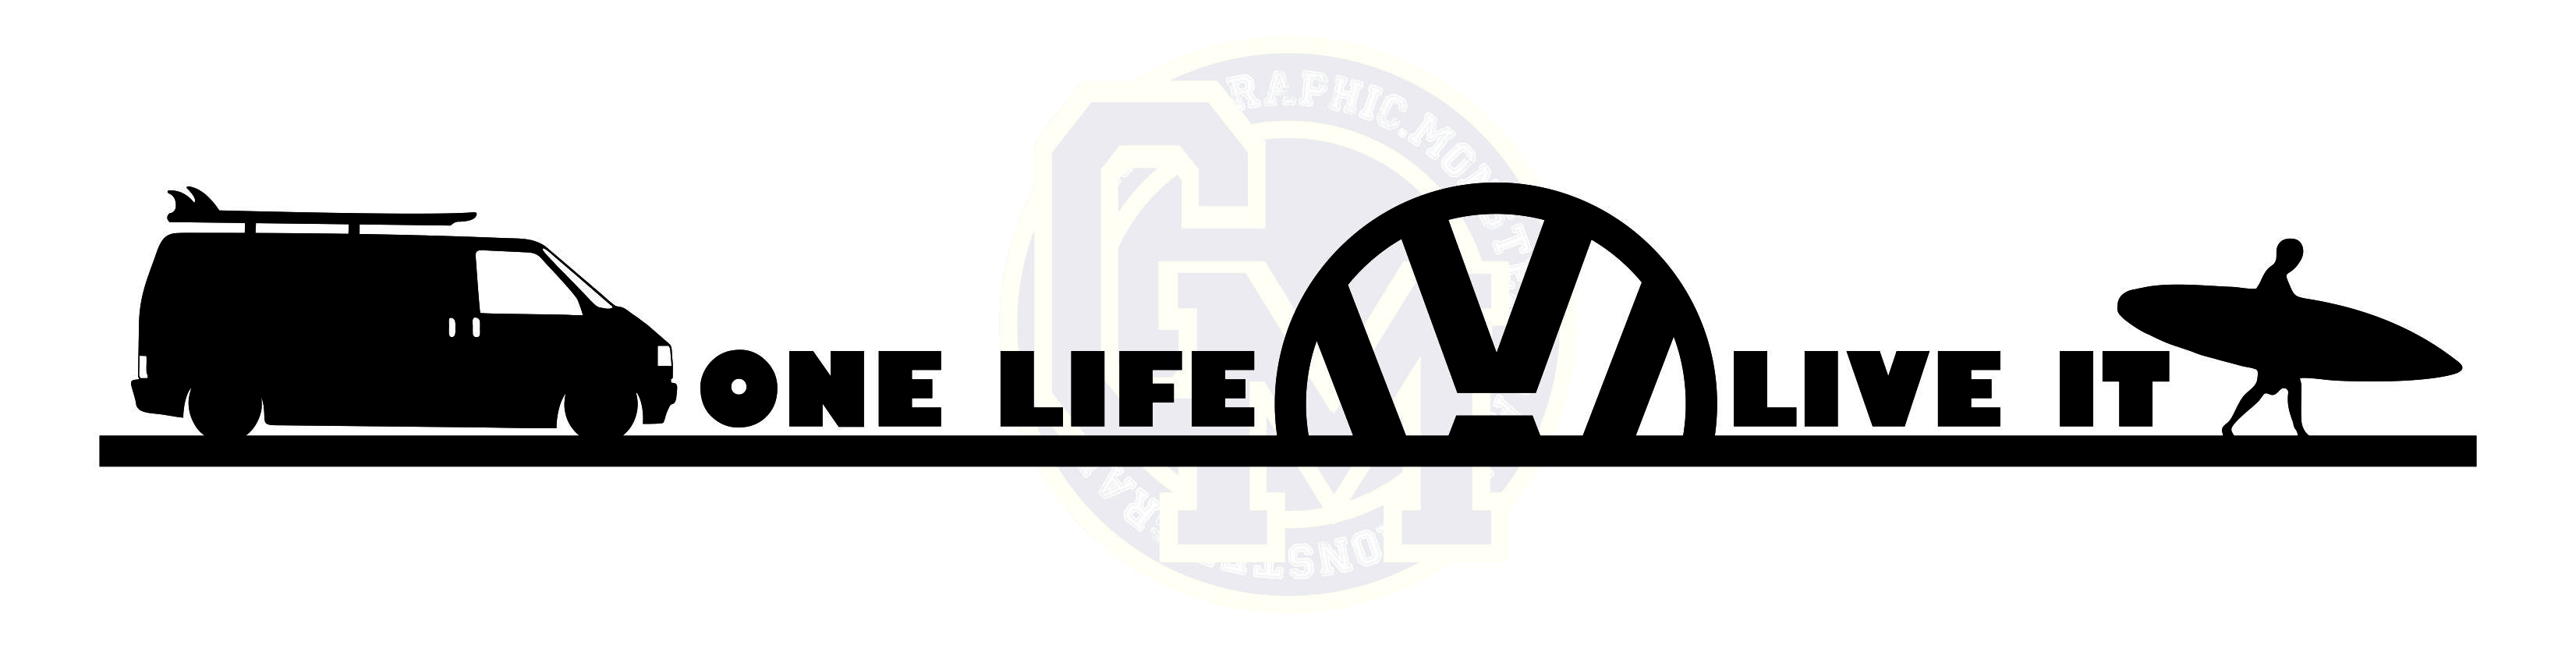 One life live it t4 camper vinyl sticker decal 6666 p jpg